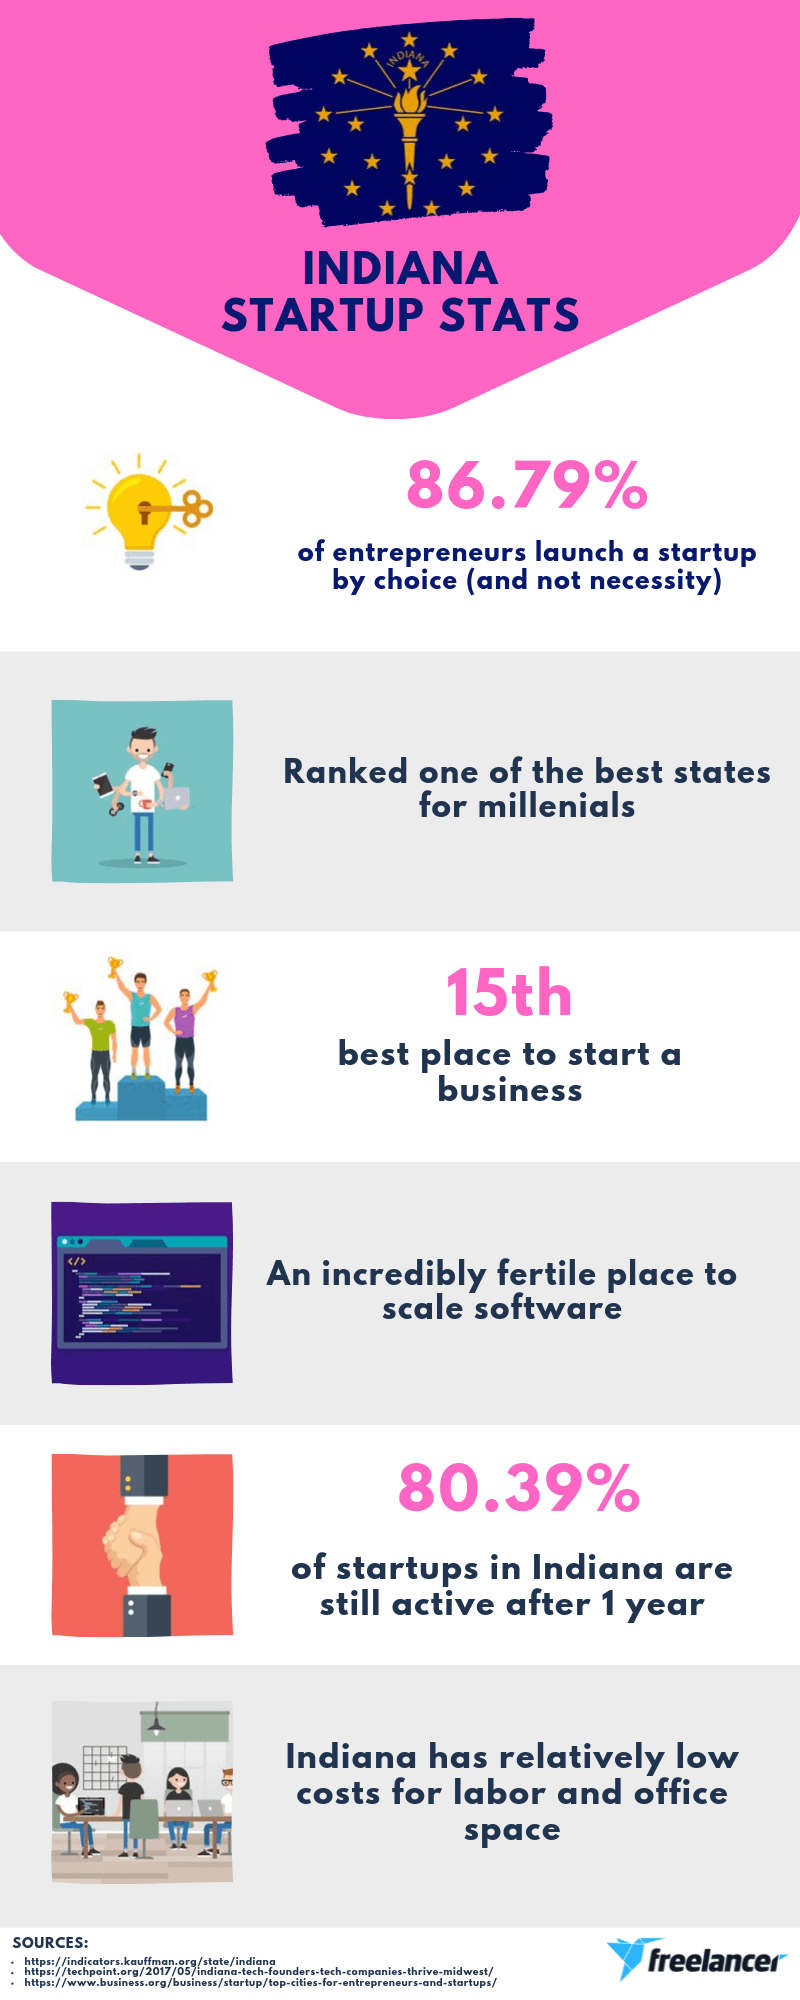 Indiana startup stats infrographic